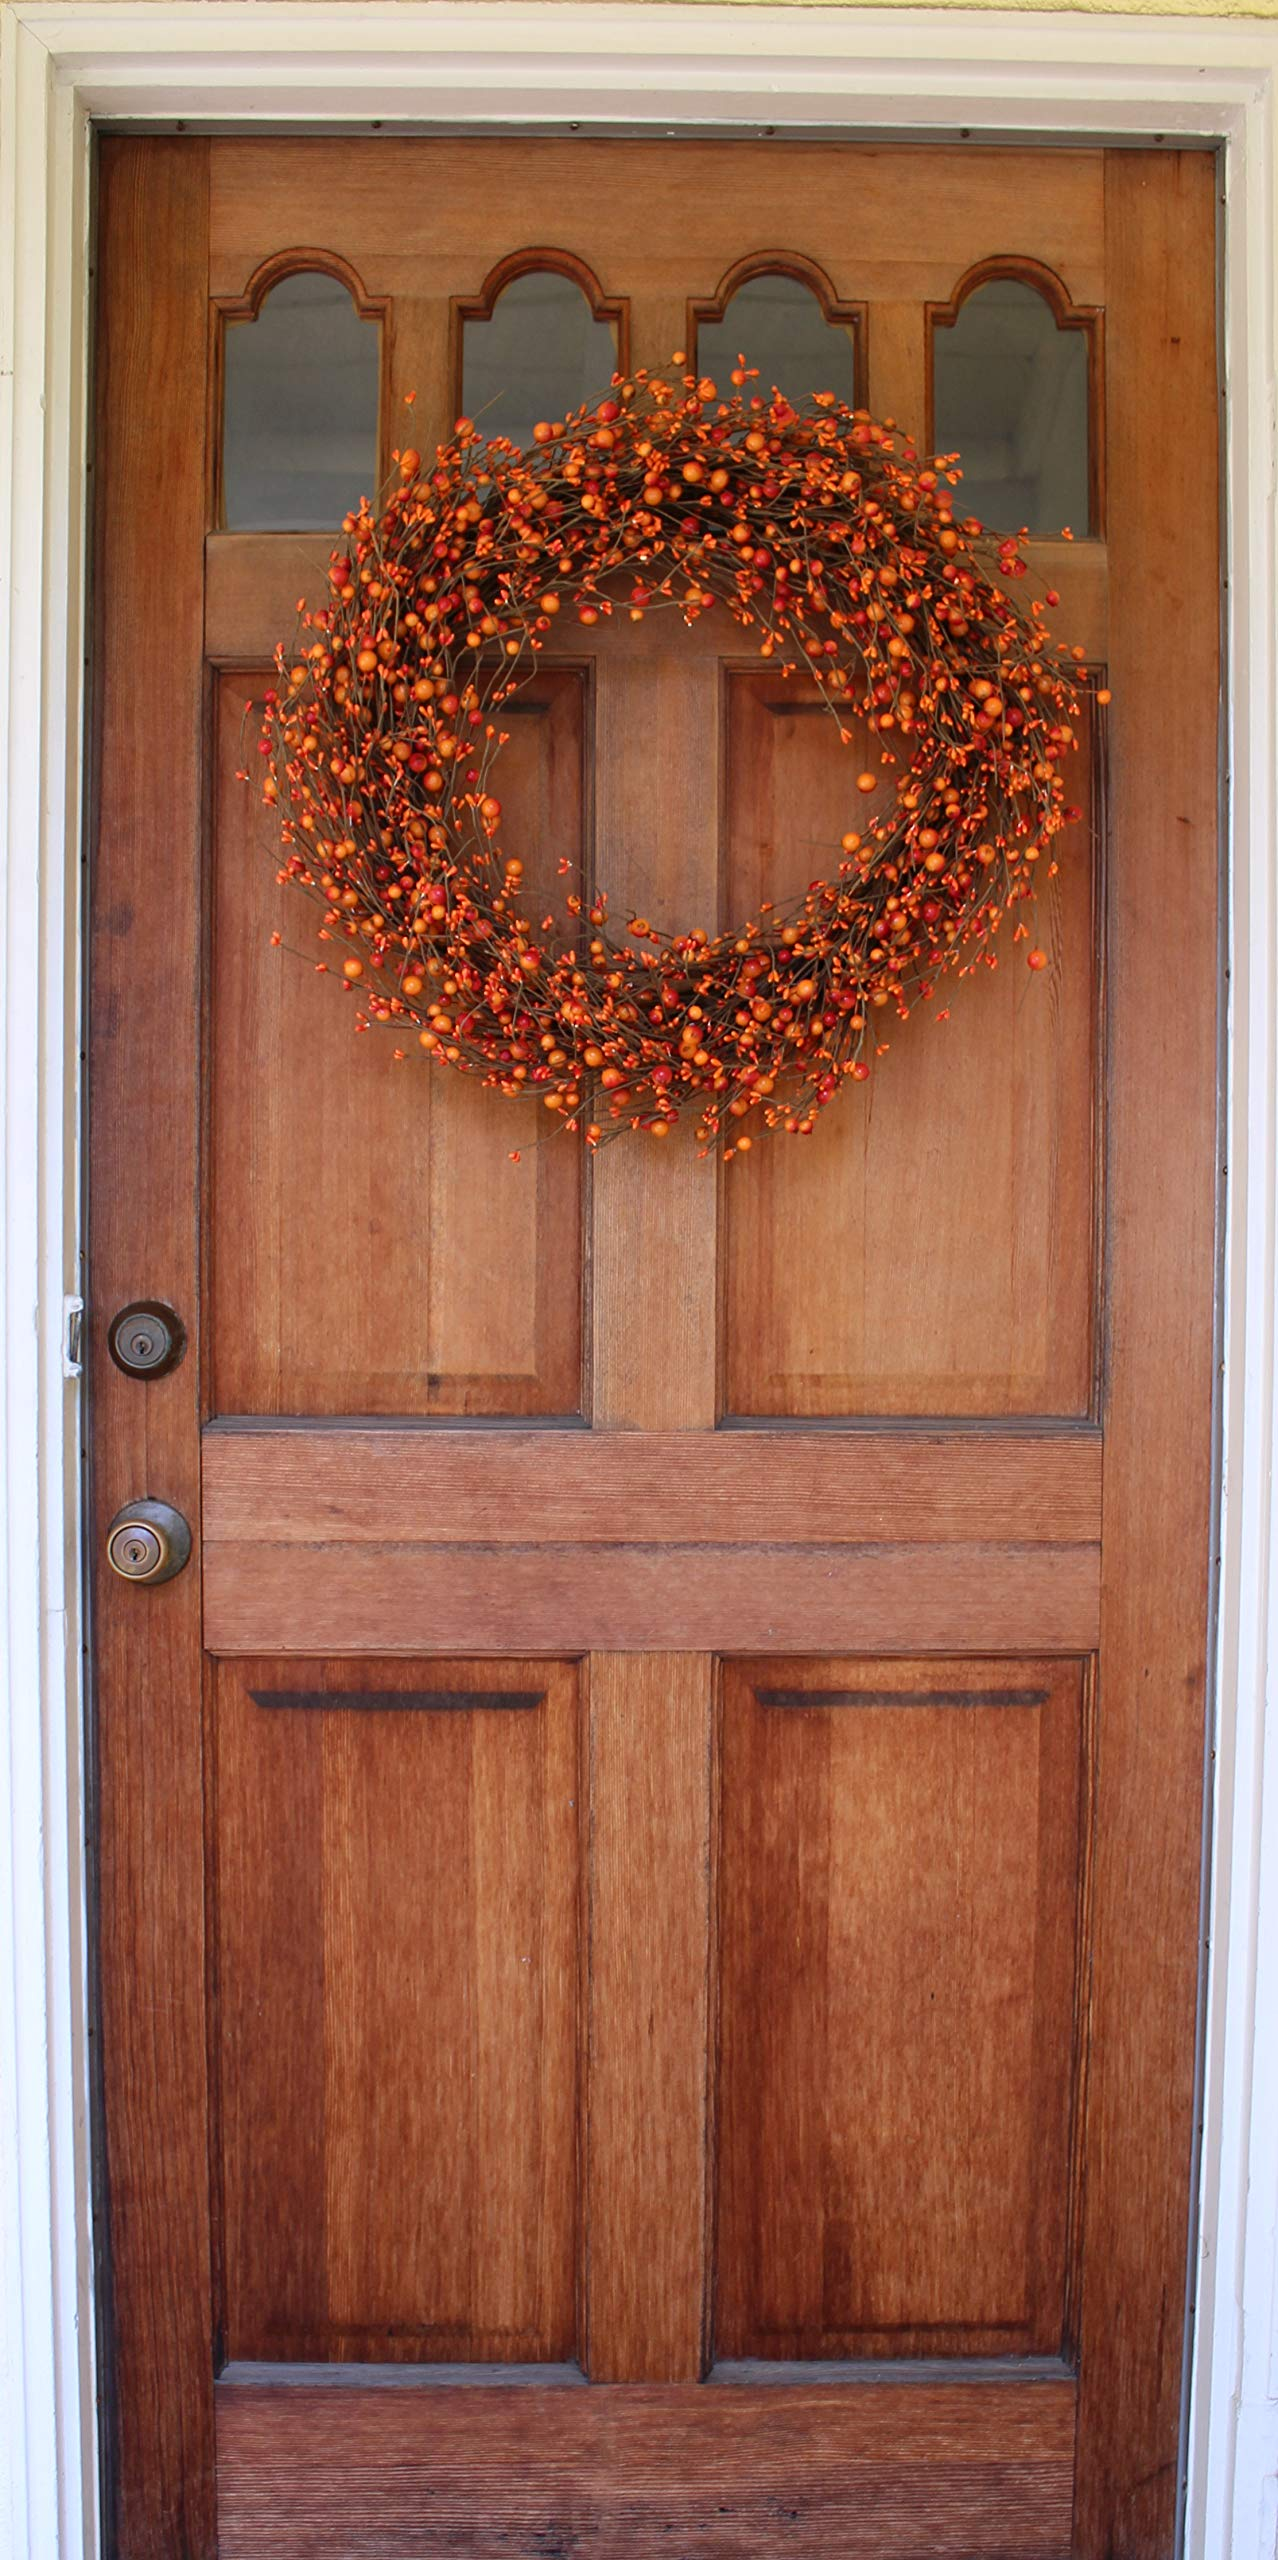 The Wreath Depot Weston Fall Berry Wreath, 22 Inches by The Wreath Depot (Image #4)